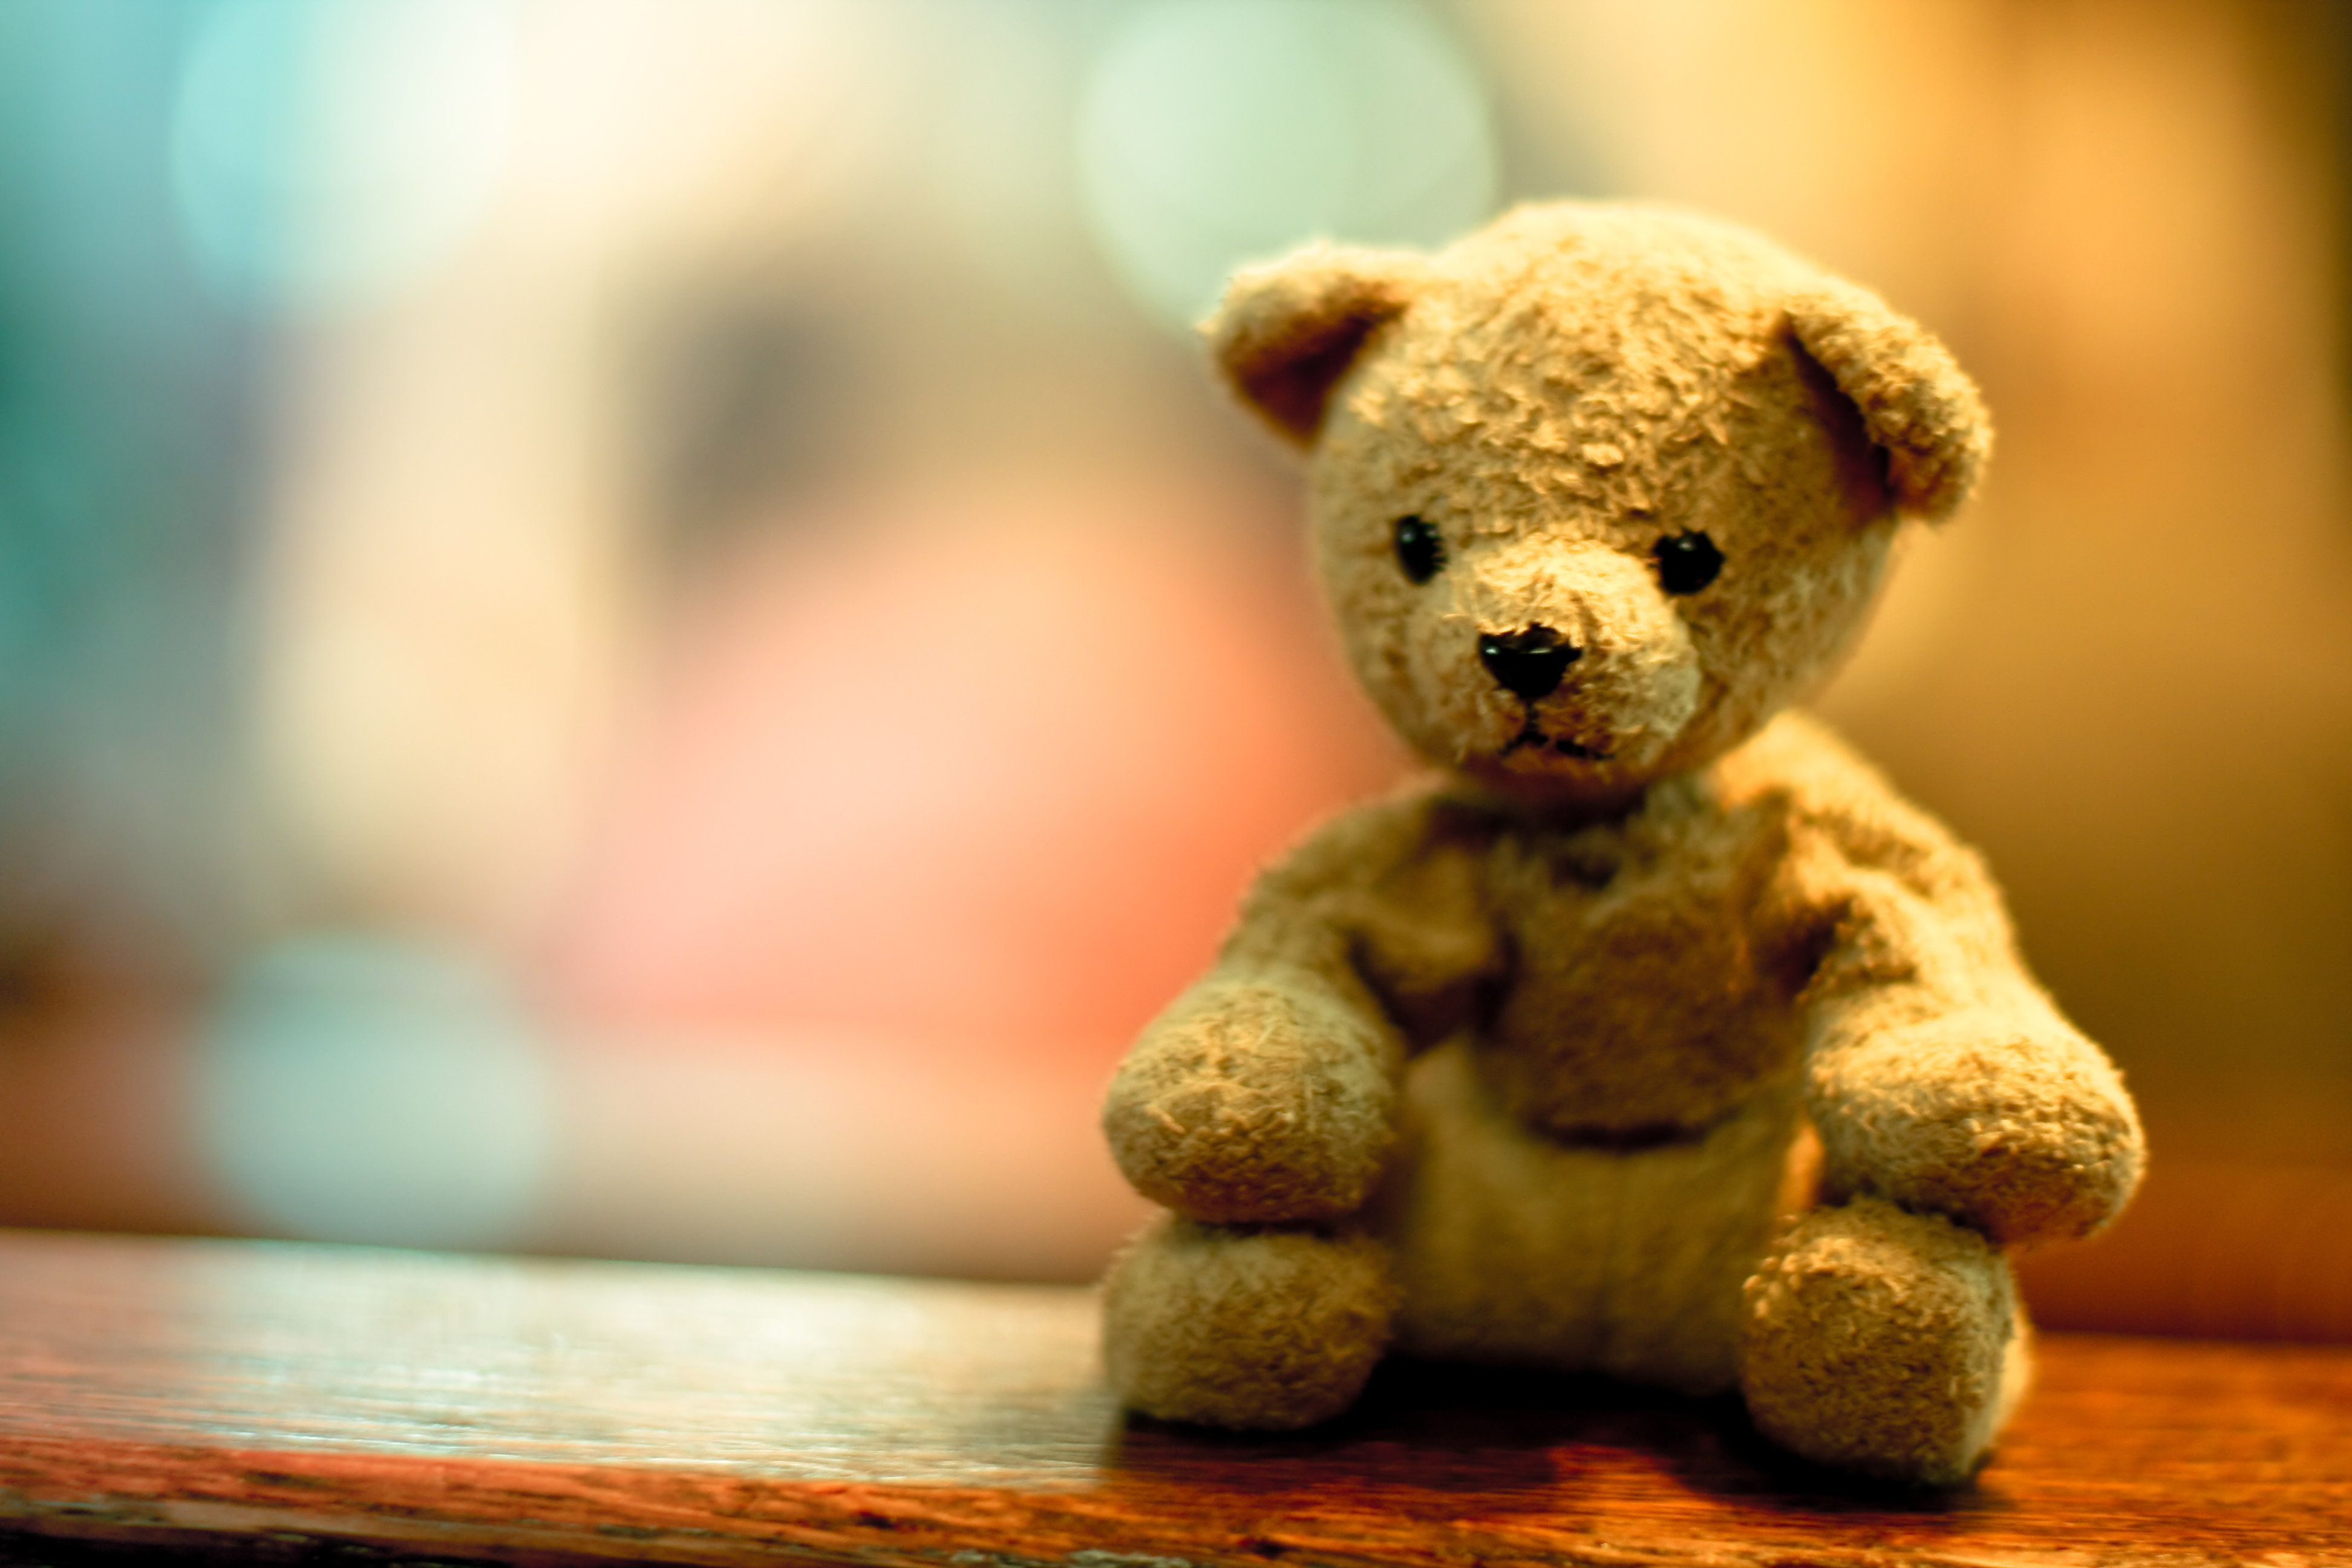 Teddy bearswere so dubbedmore than a century ago. Here's their